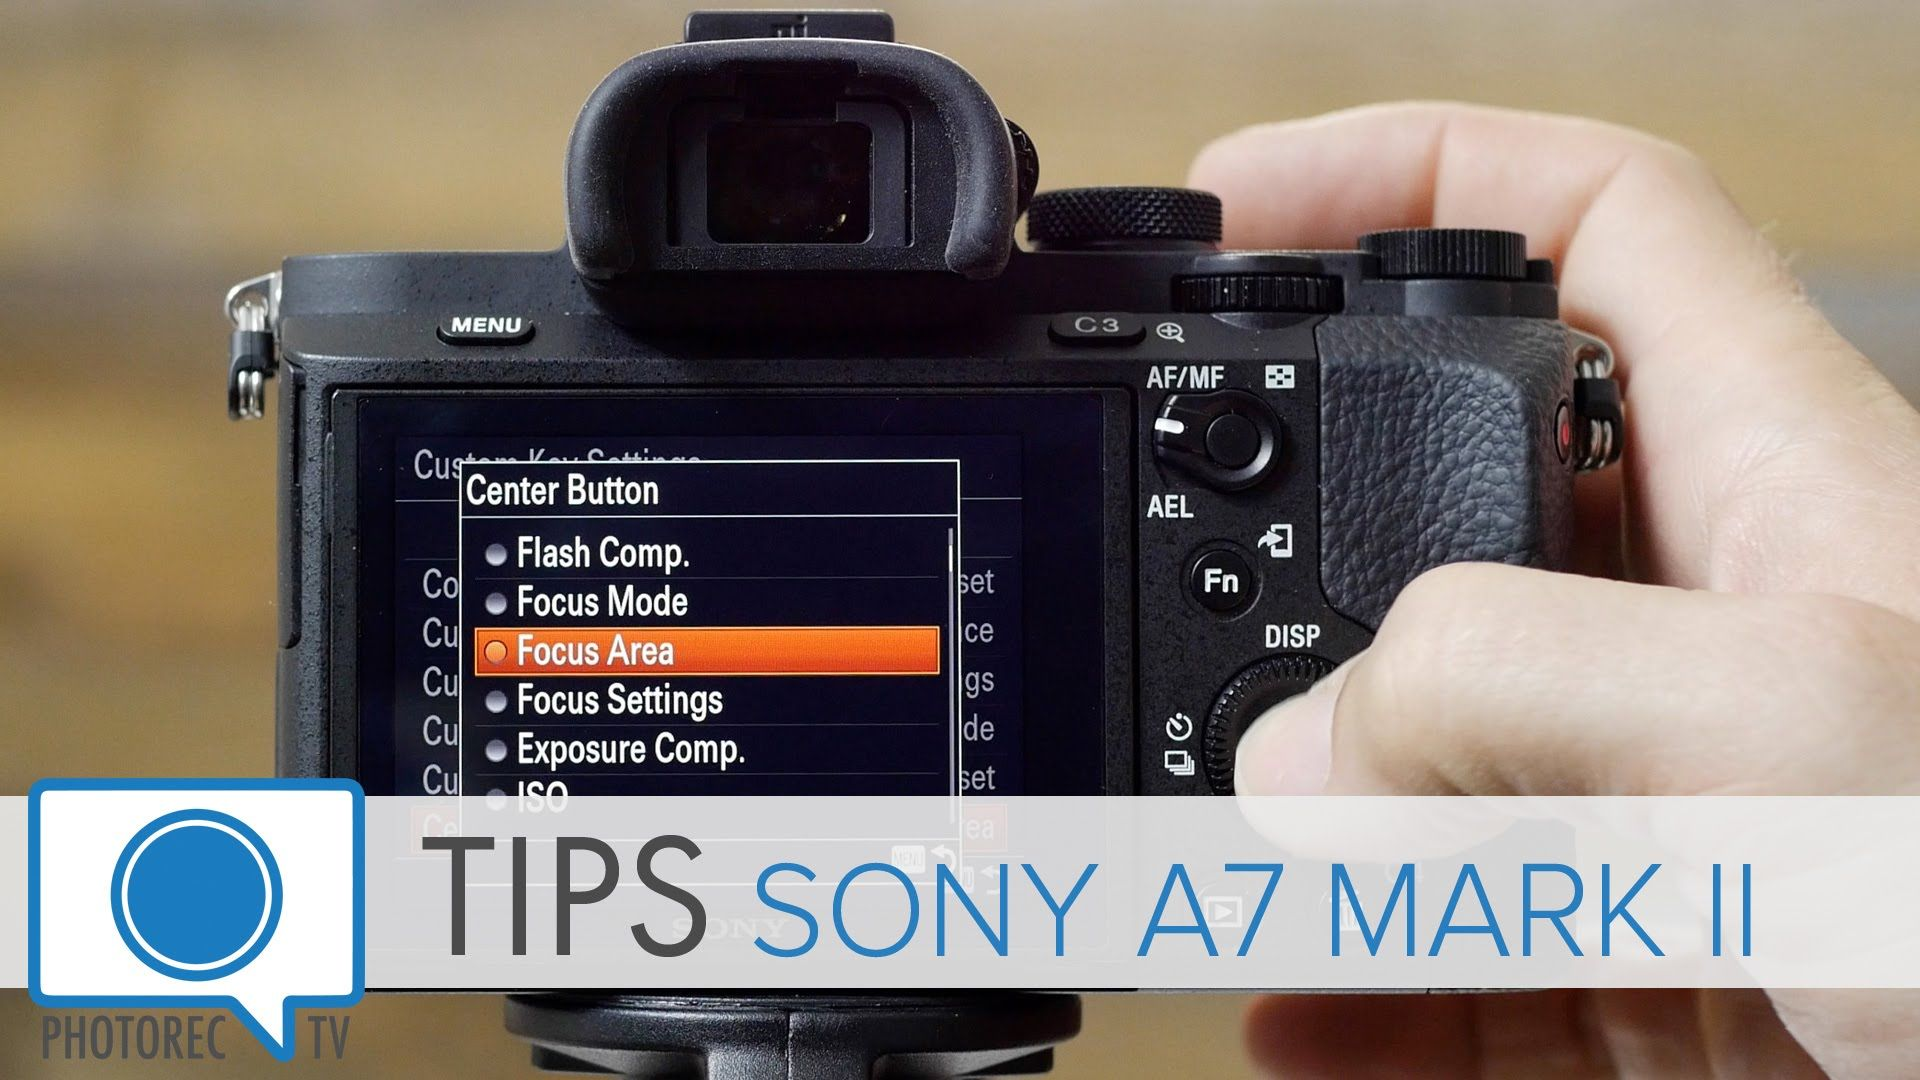 Sony A7 Mark II Tips | Photo | Sony camera, Sony digital